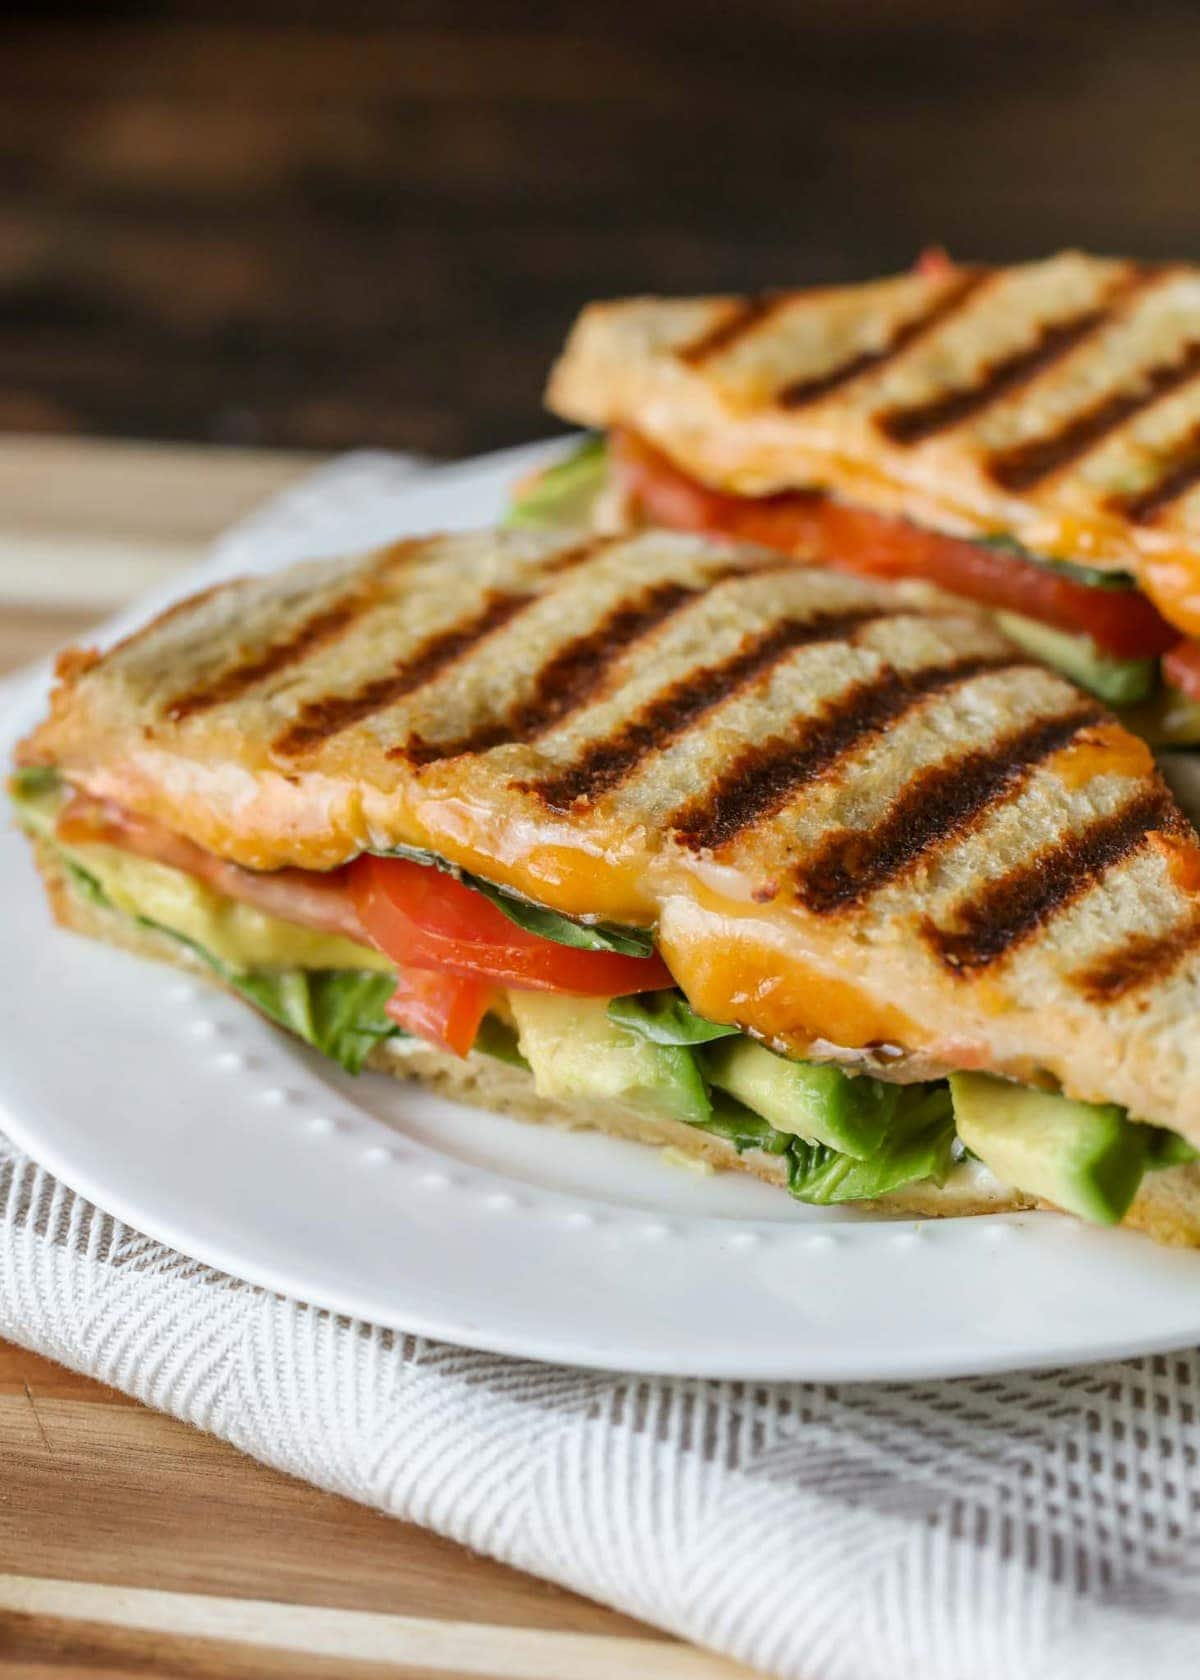 Veggie Panini with grill marks